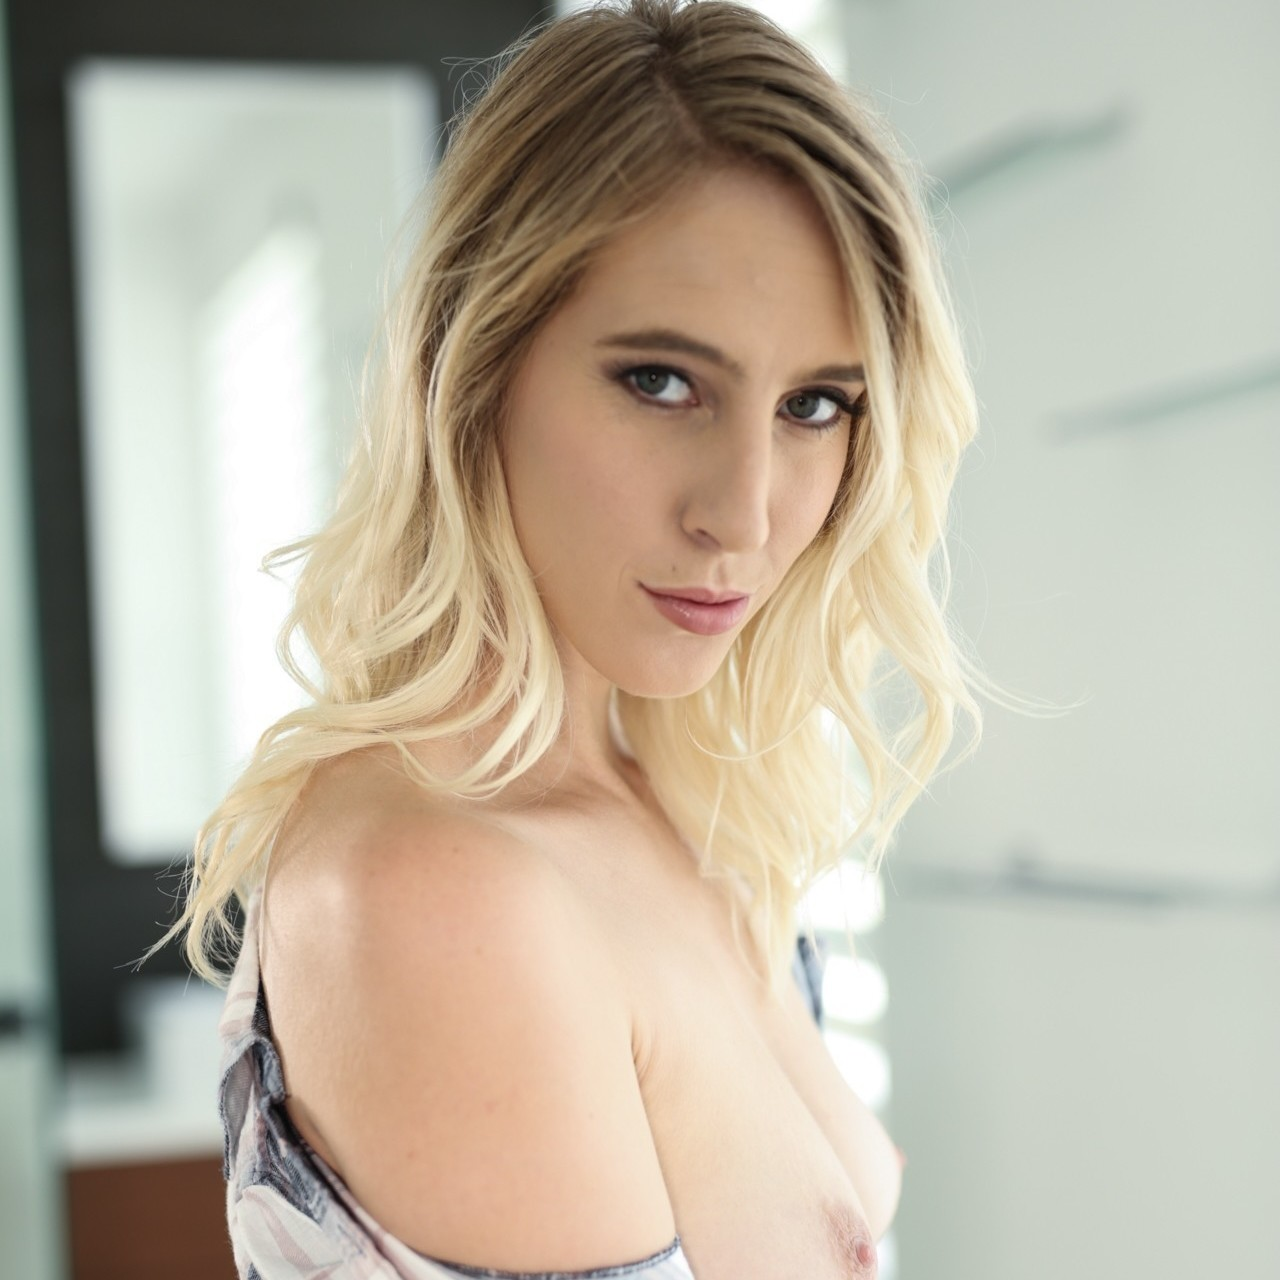 Top 100 Freeones 2017, Candence Lux